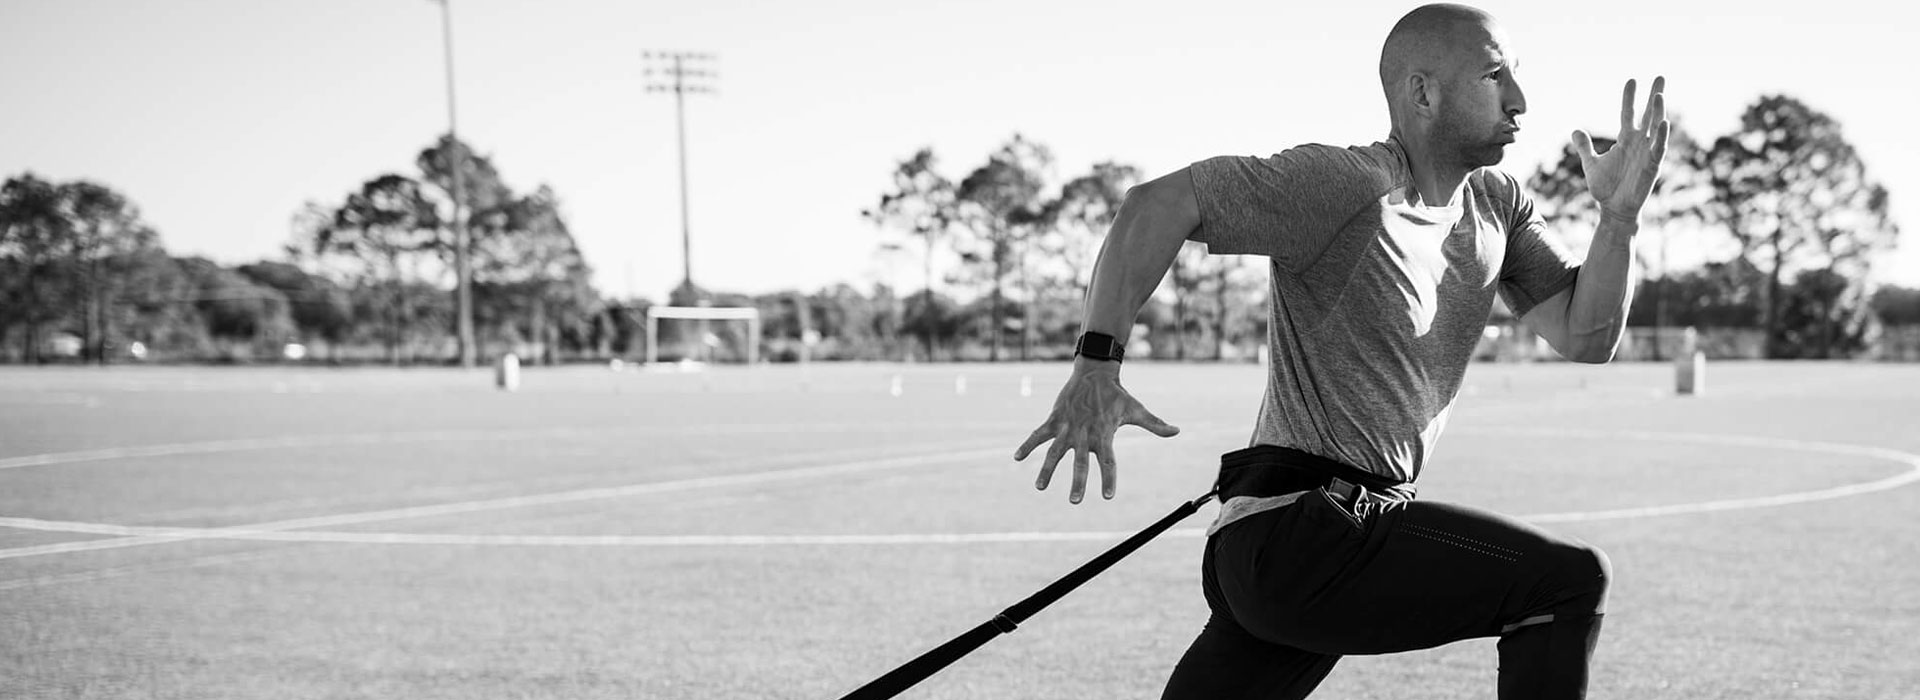 Why Joey Greany Sports Performance Is Ranked One Of The Best Gyms near St. Petersburg FL, Why Joey Greany Sports Performance Is Ranked One Of The Best Gyms near Tampa FL, Why Joey Greany Sports Performance Is Ranked One Of The Best Gyms near the Florida Panhandle